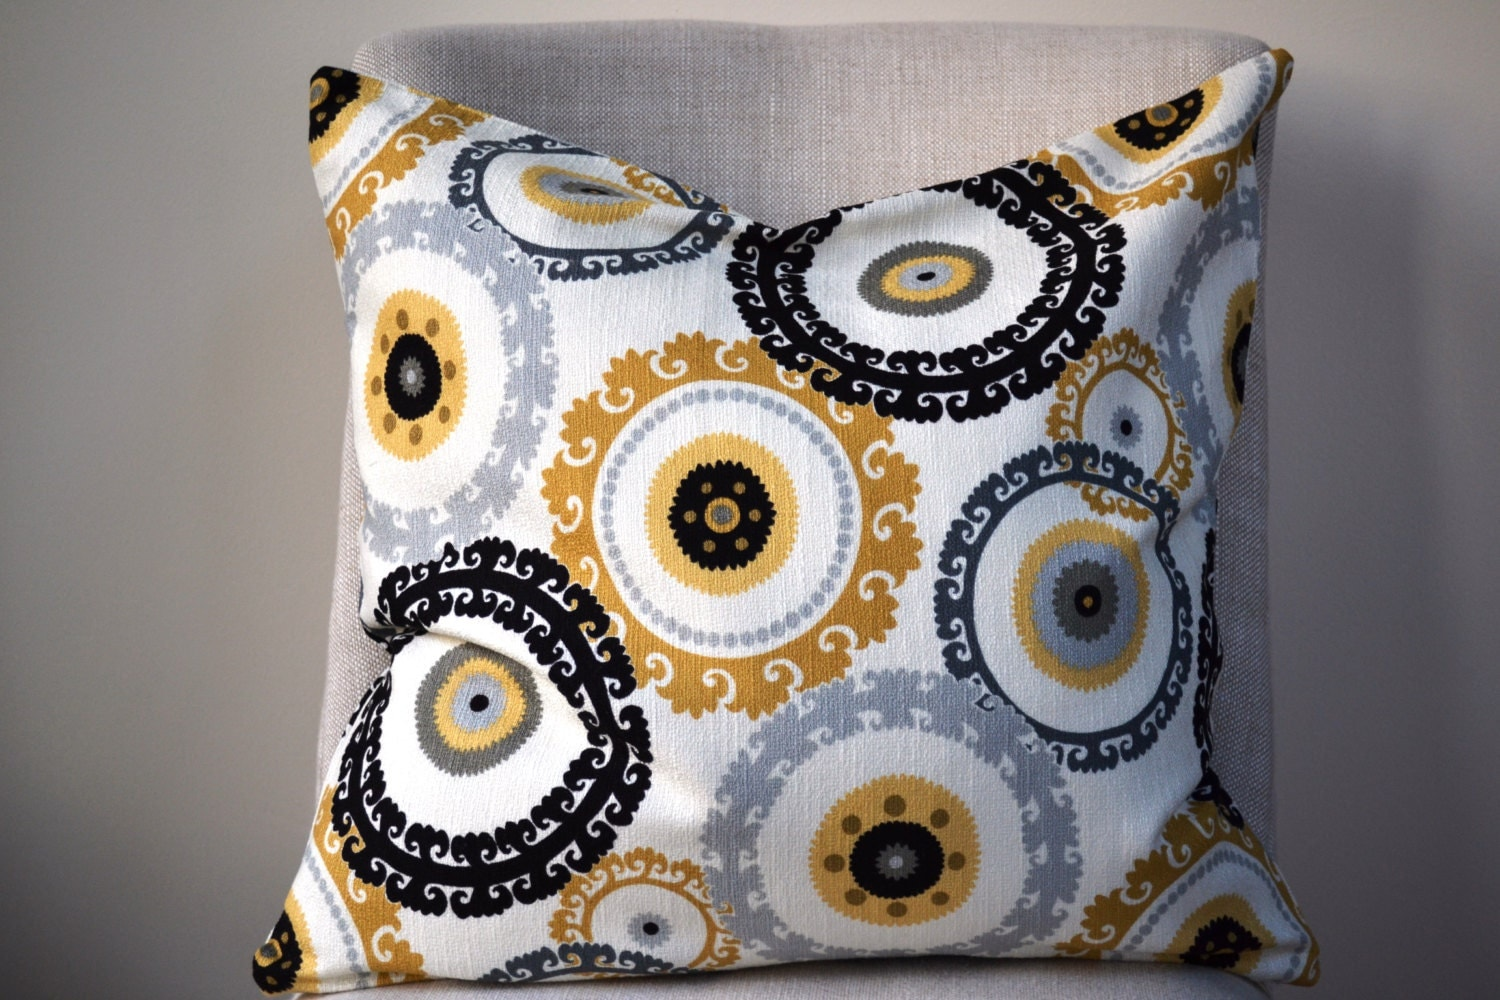 Common Decorative Pillow Sizes : Decorative Throw Pillow 20 by 20 inch and other sizes